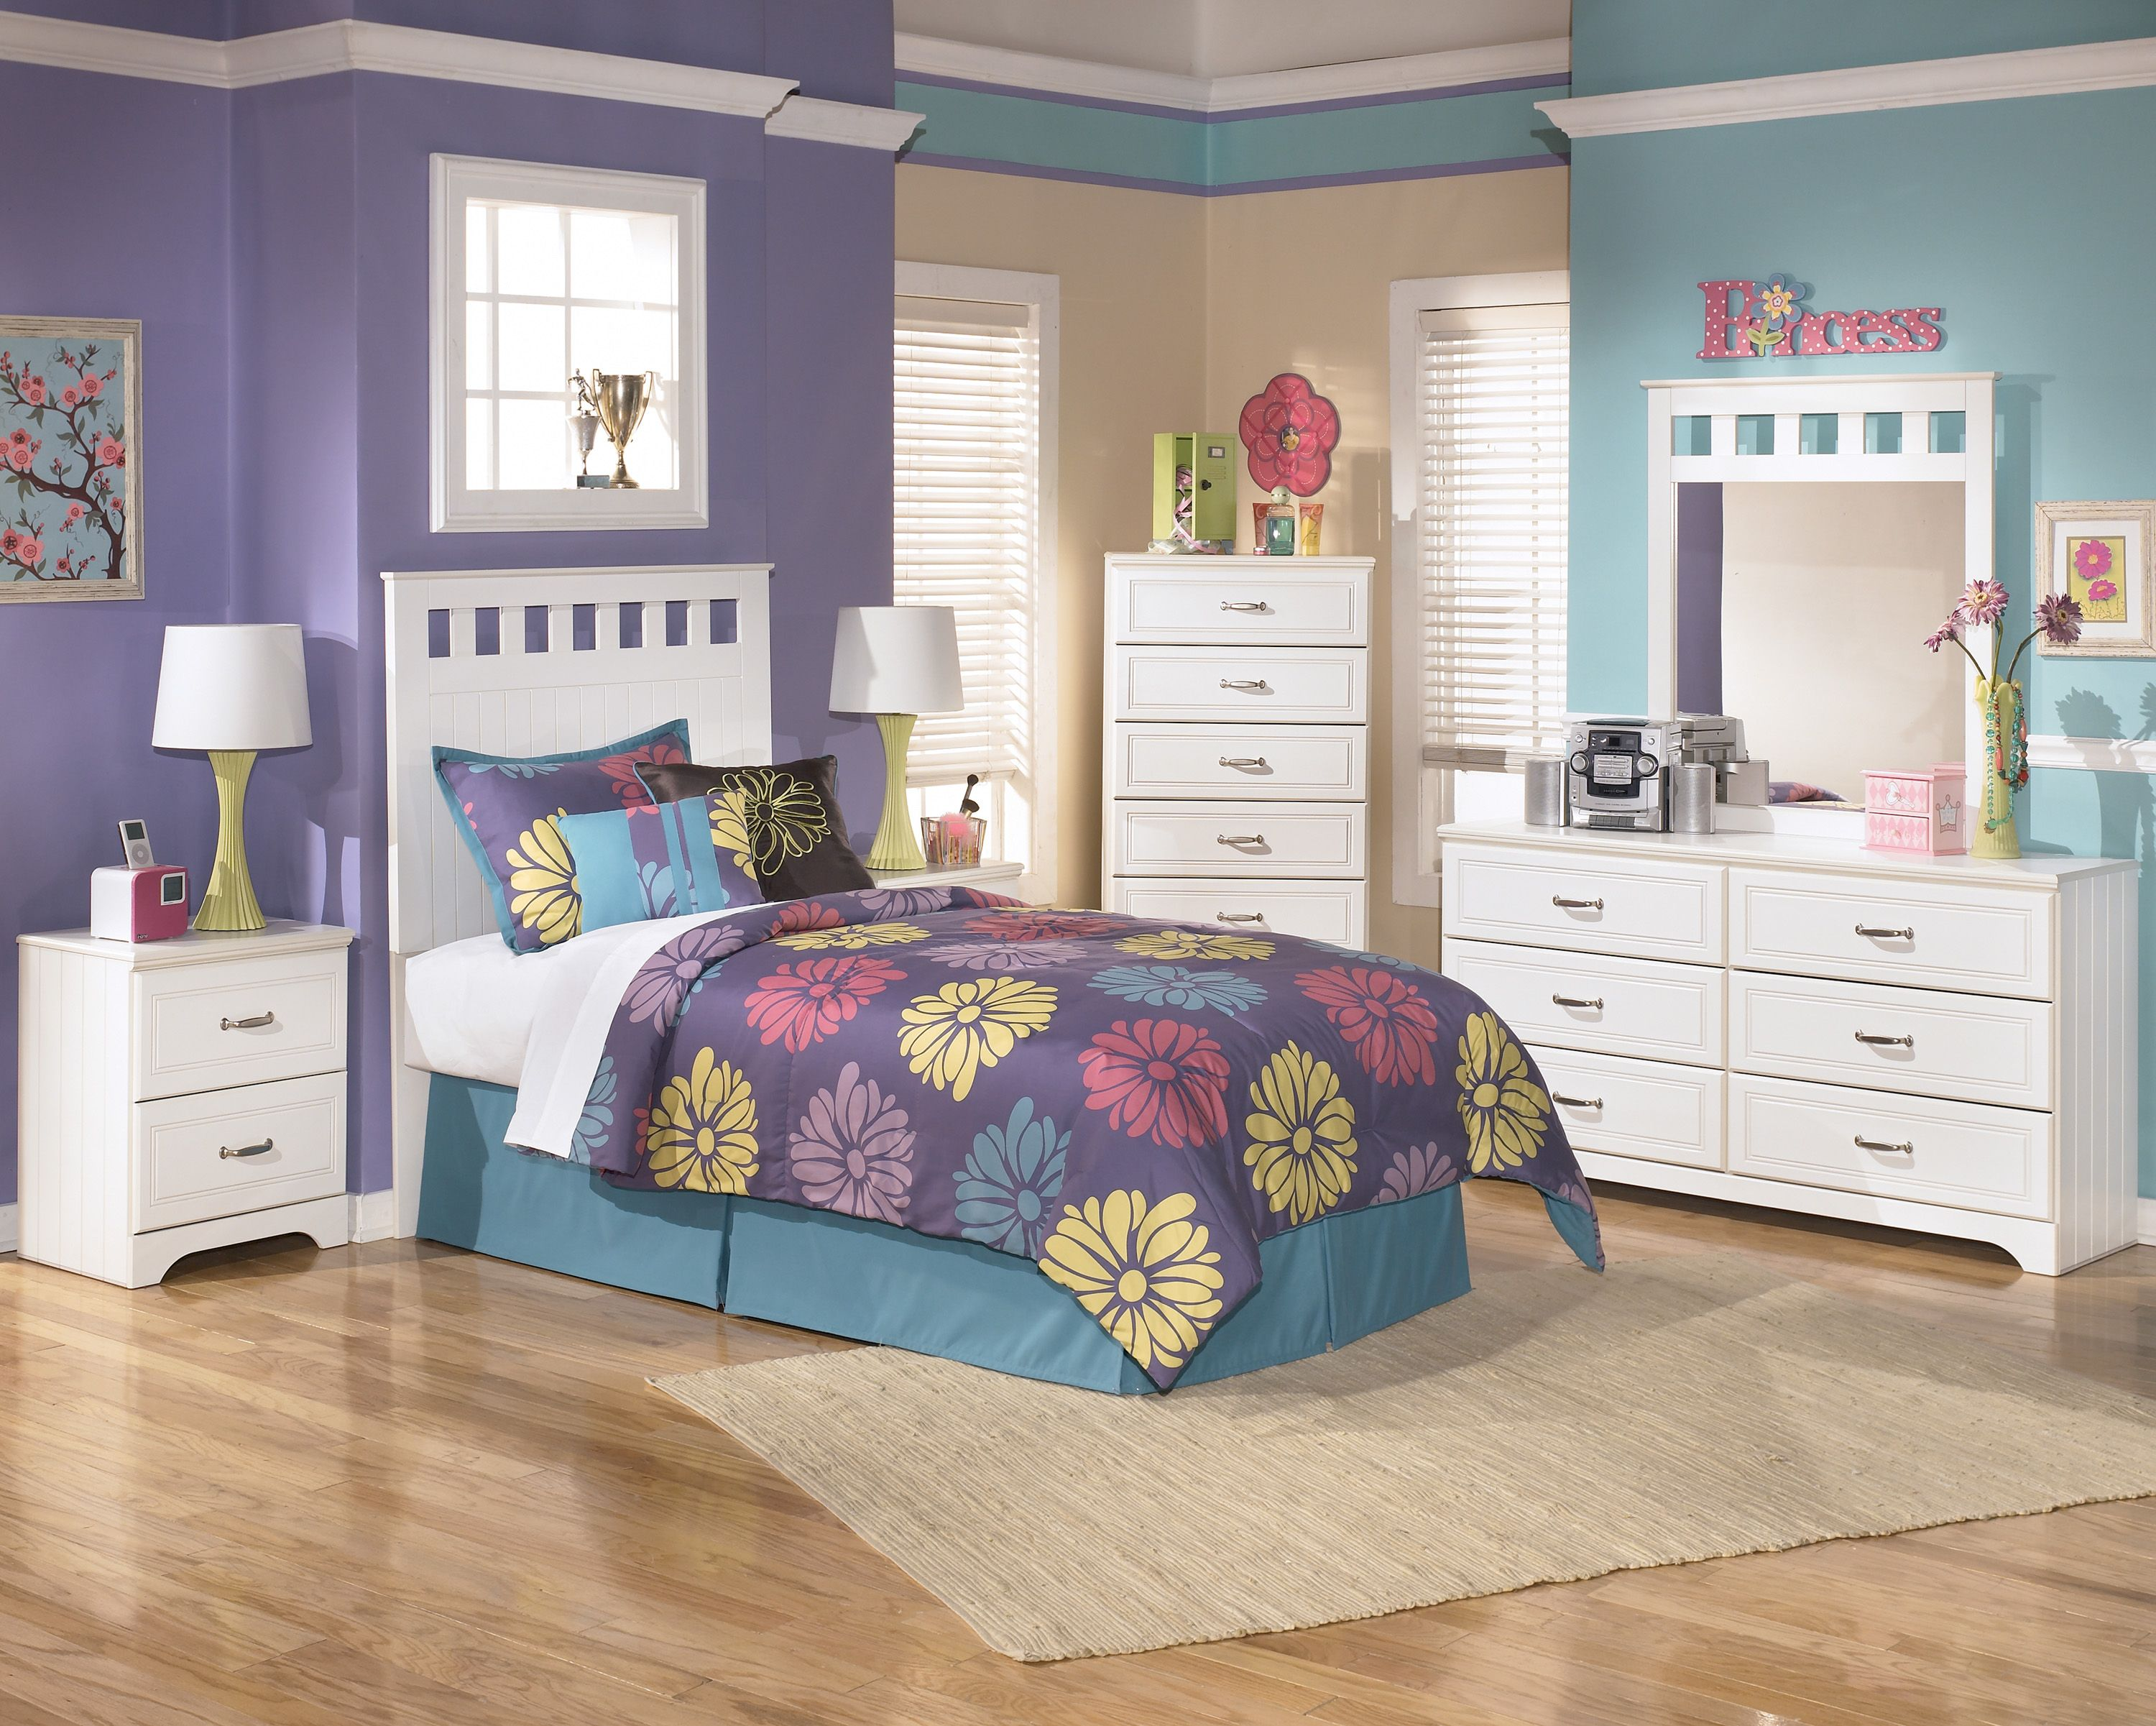 Cool kids furniture great kids bedroom furniture kid - Childrens small bedroom furniture solutions ...